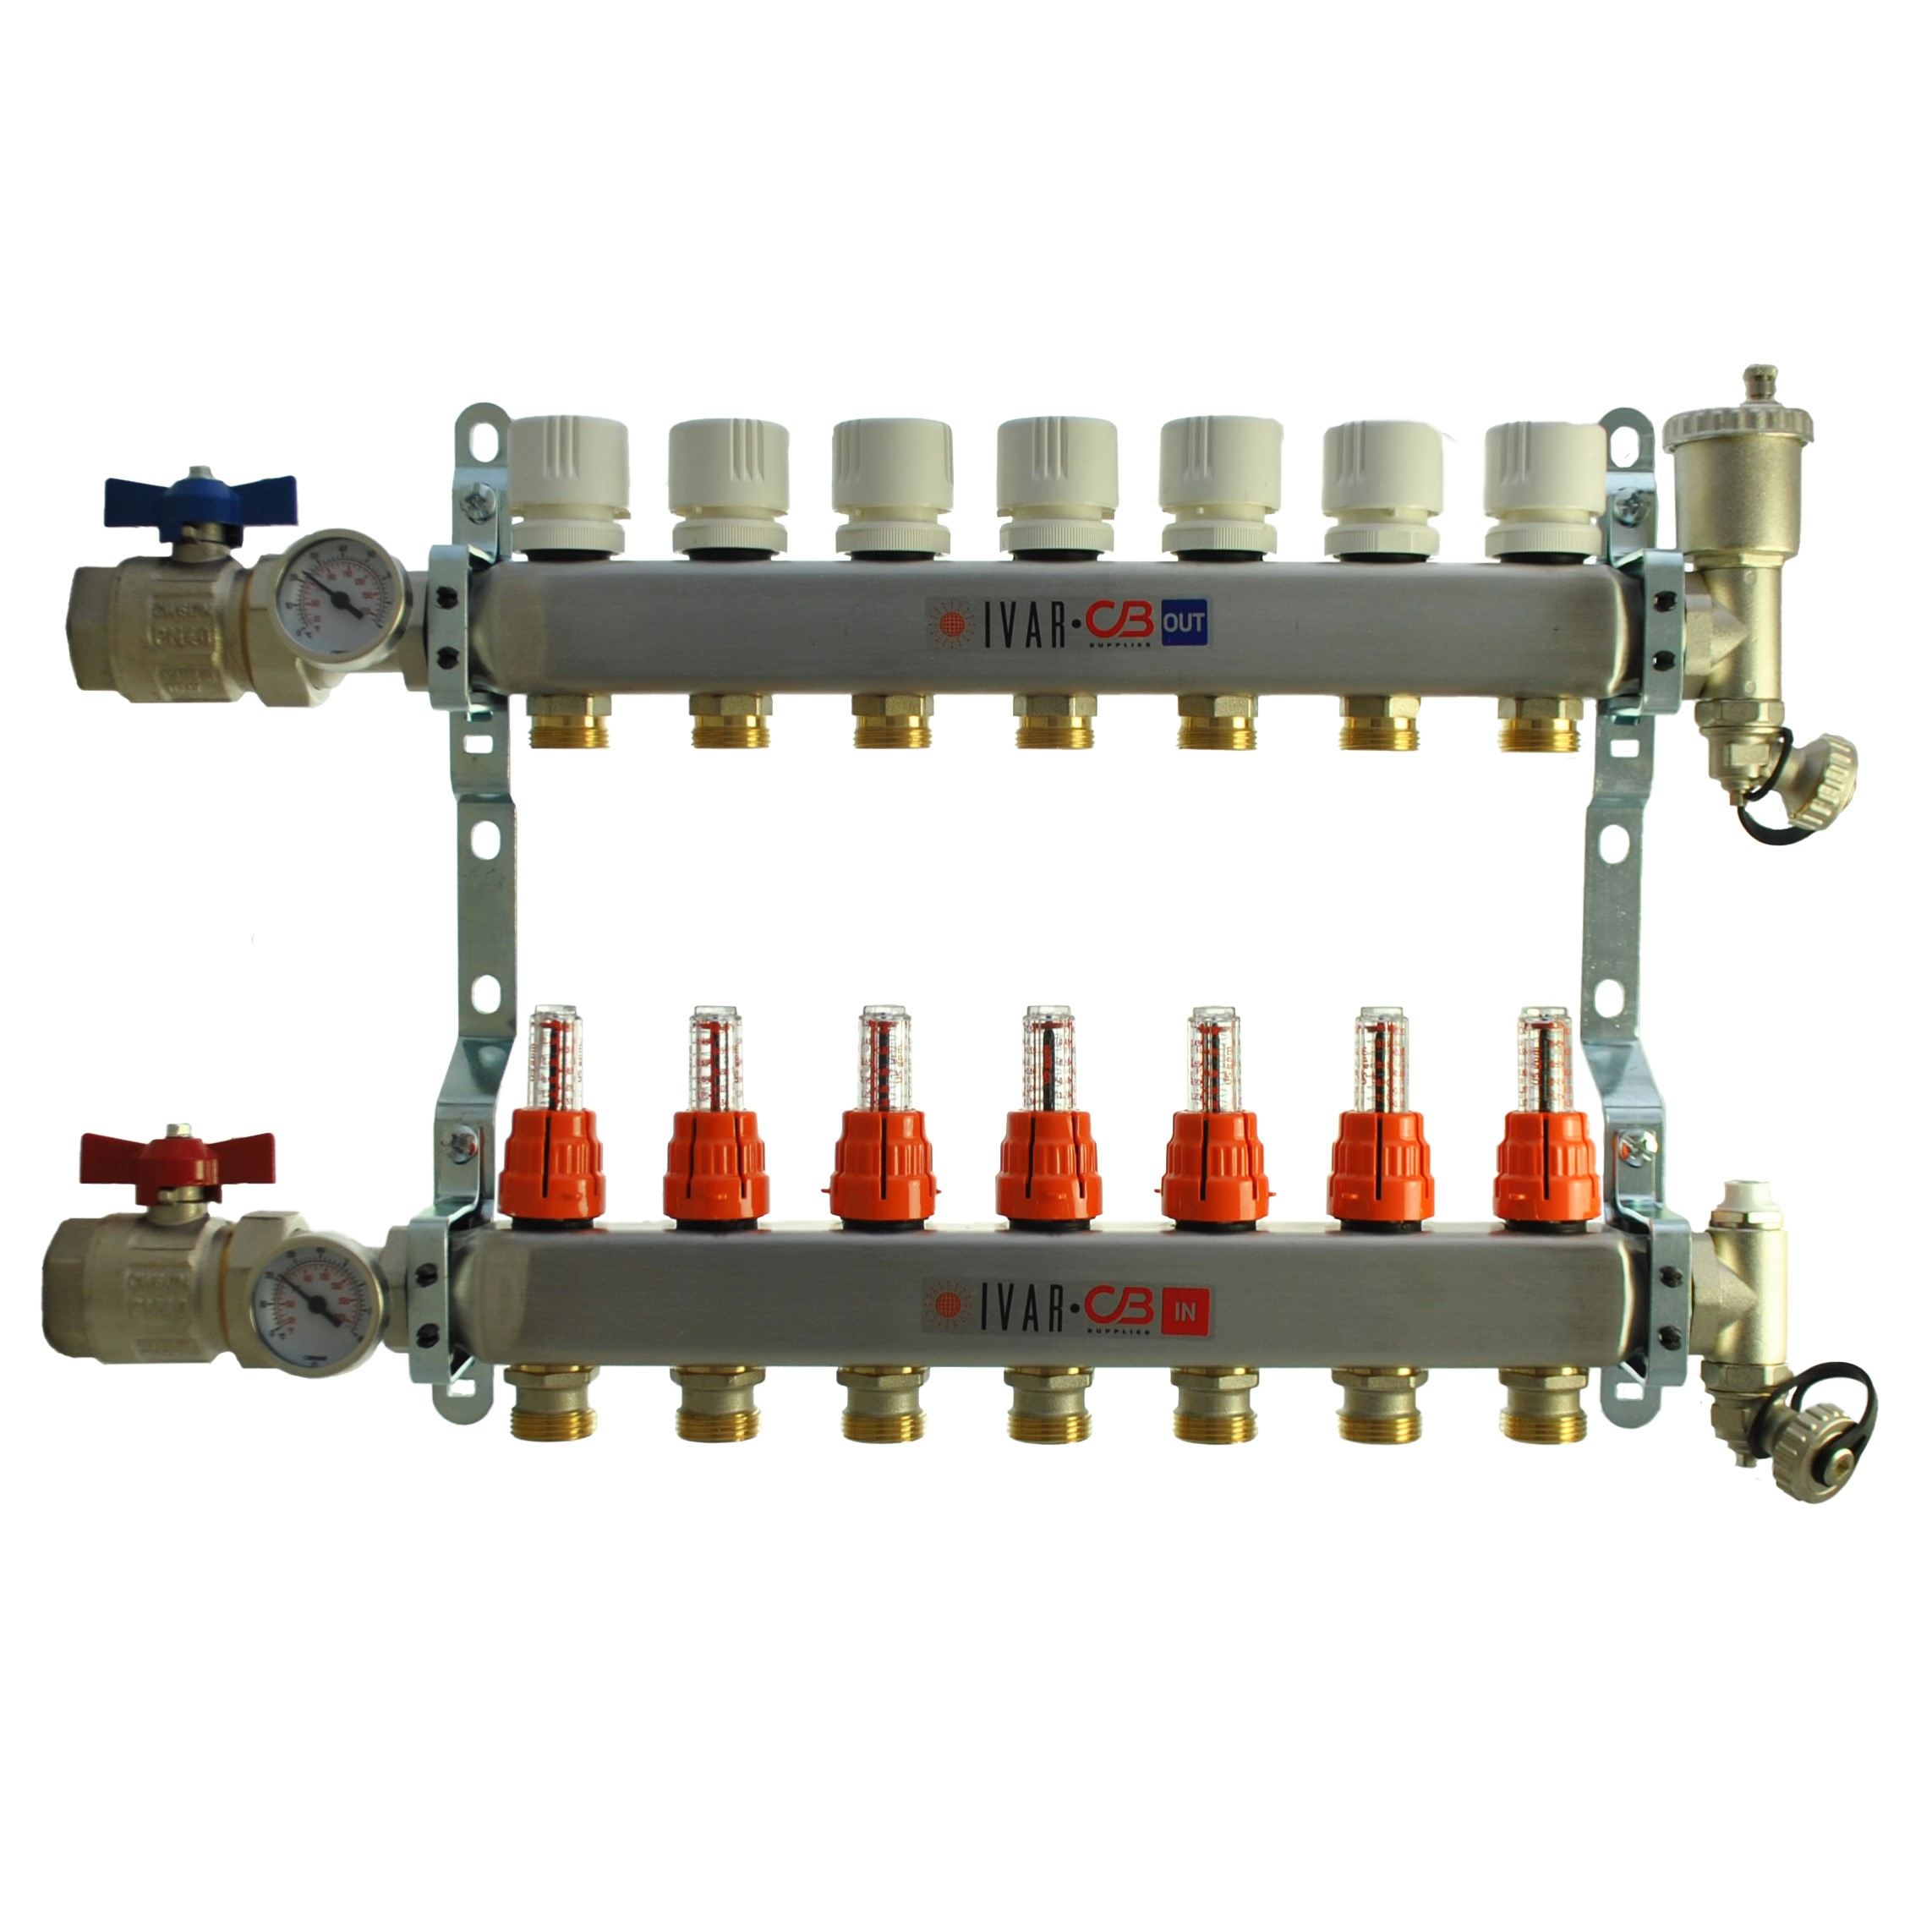 "1"" IVAR Stainless Steel Hydronic Manifold for Radiant Floor Heating - 7 ports"